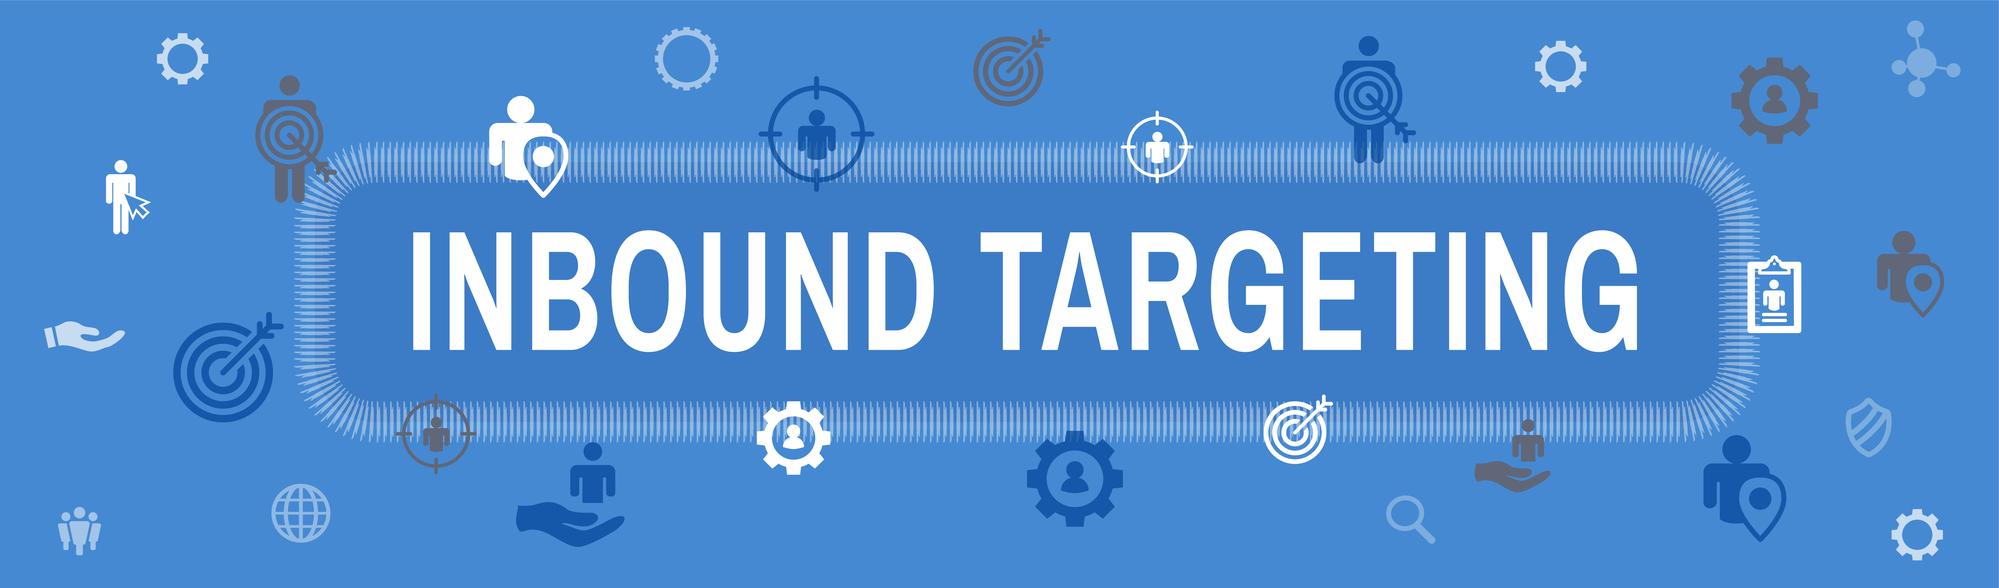 Digital Inbound Marketing & Targeting Web Banner with Vector Icon Set